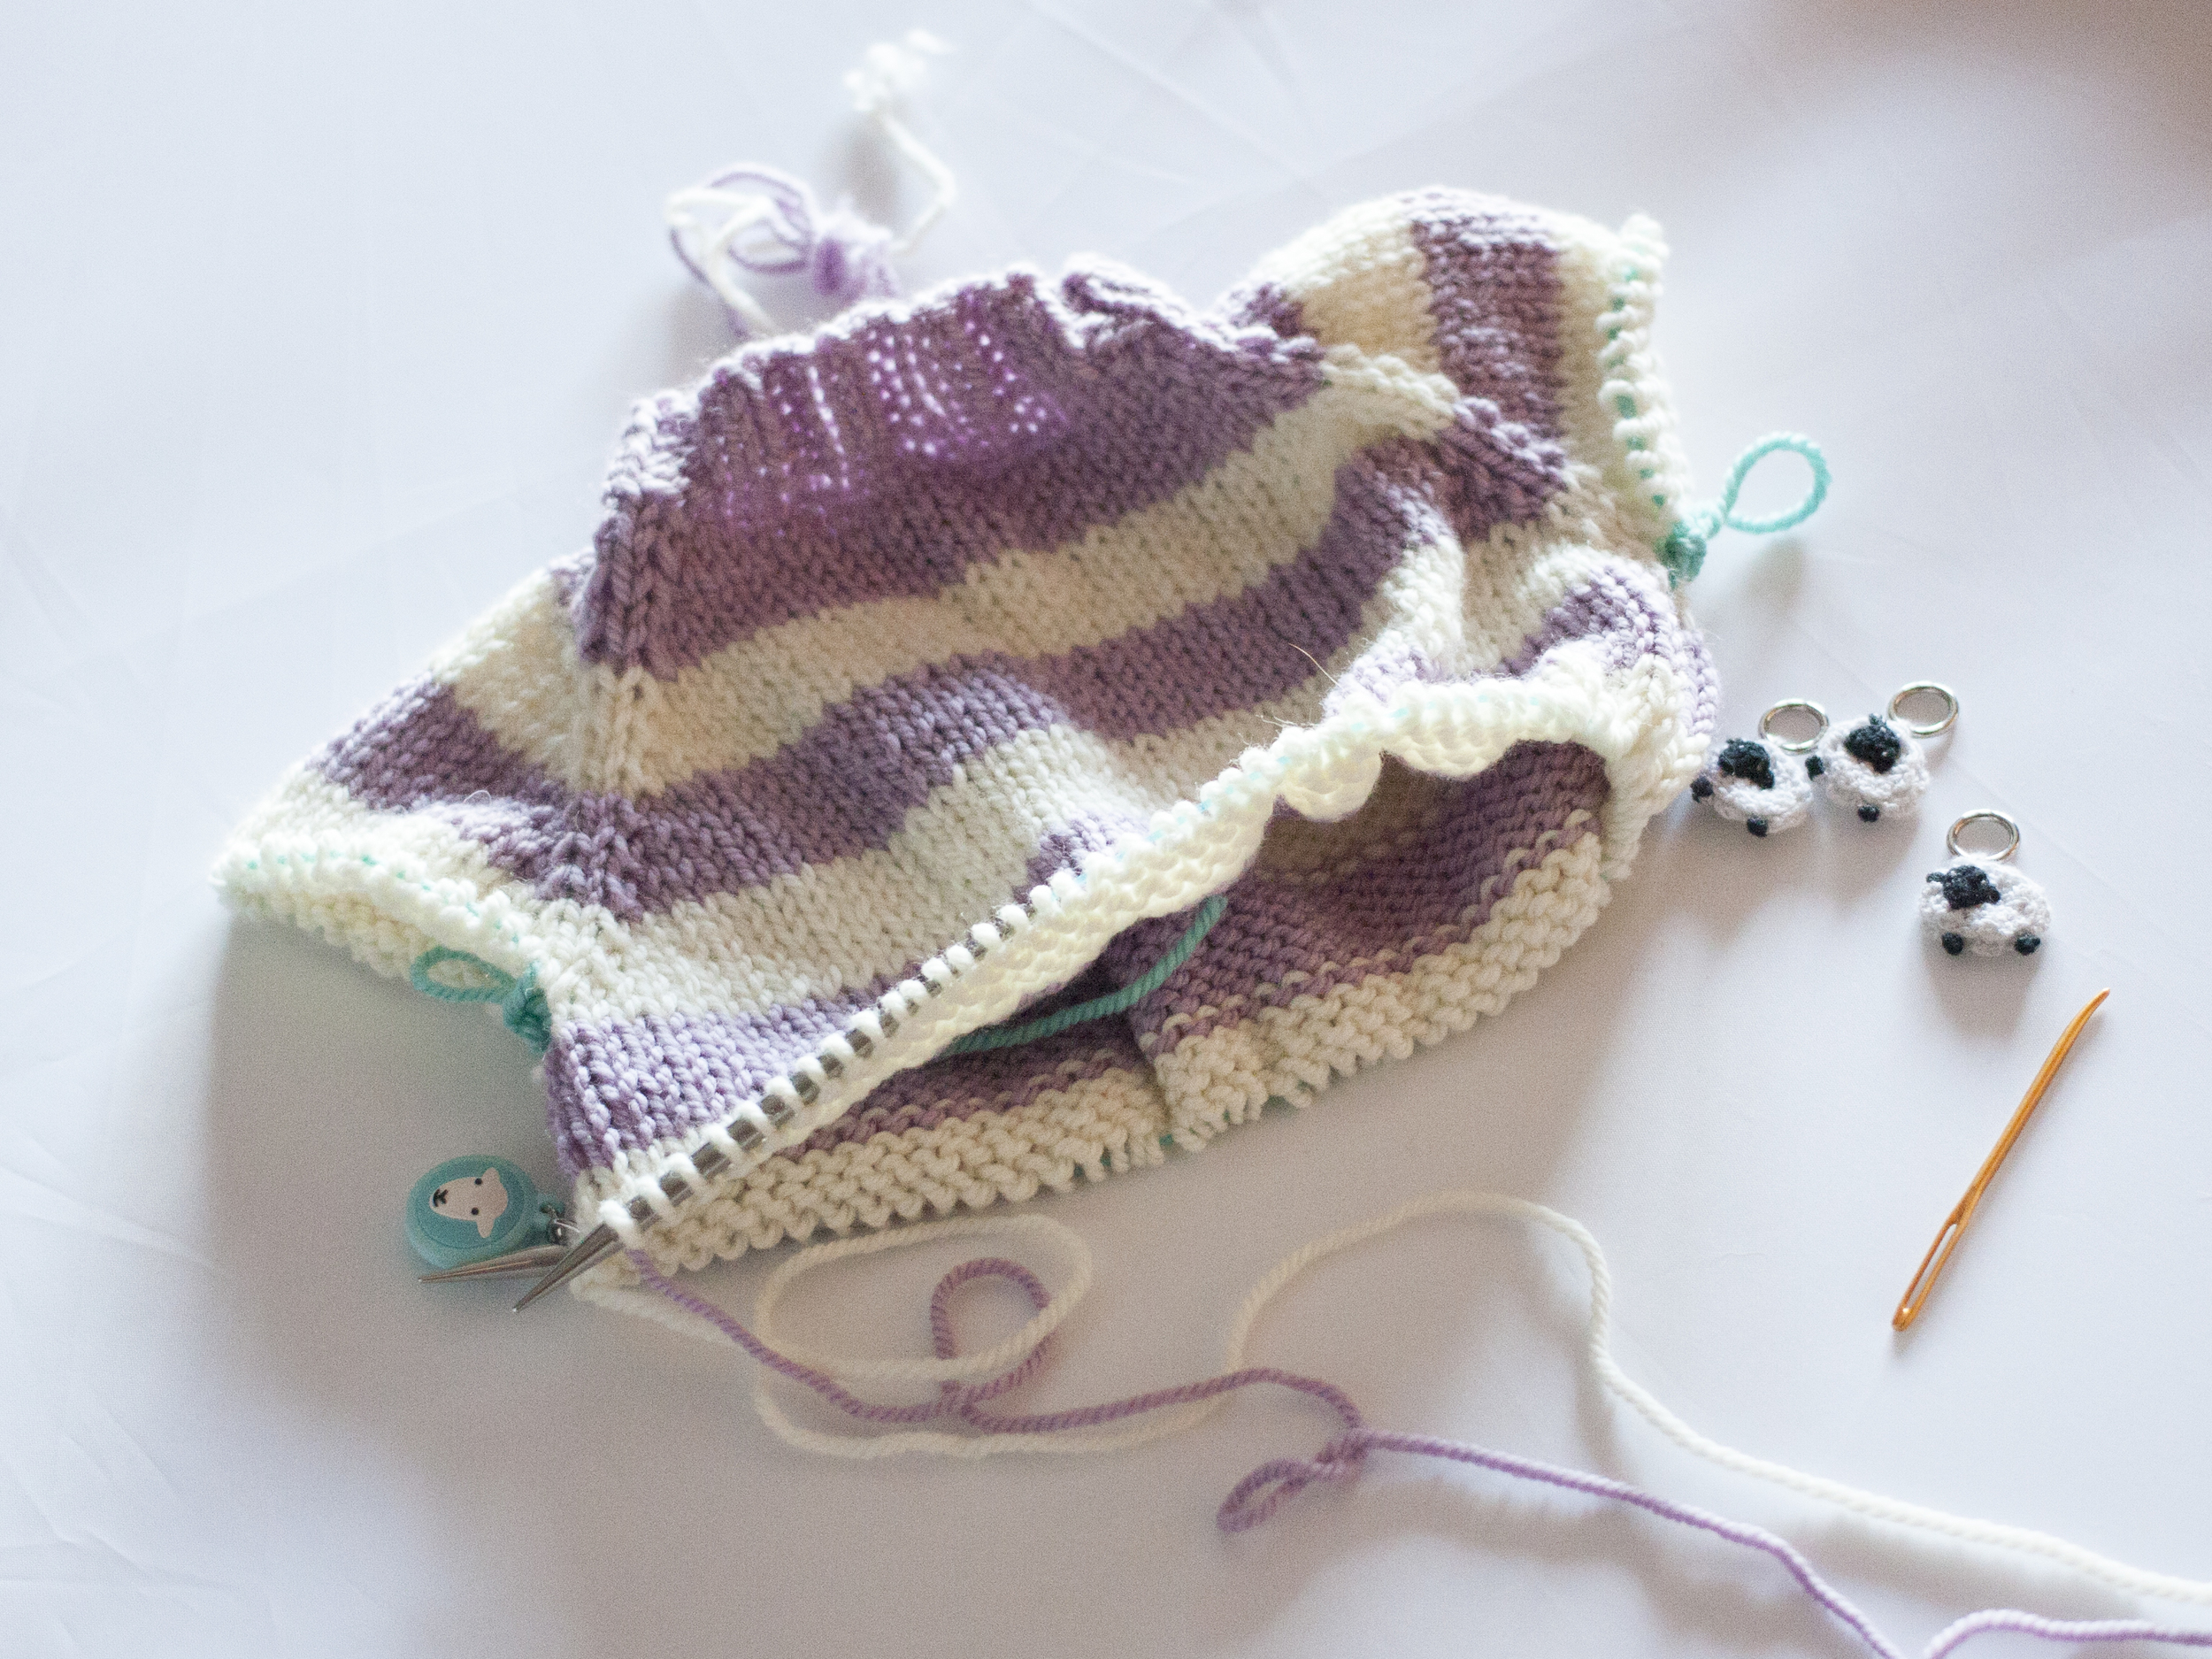 Knit down the body